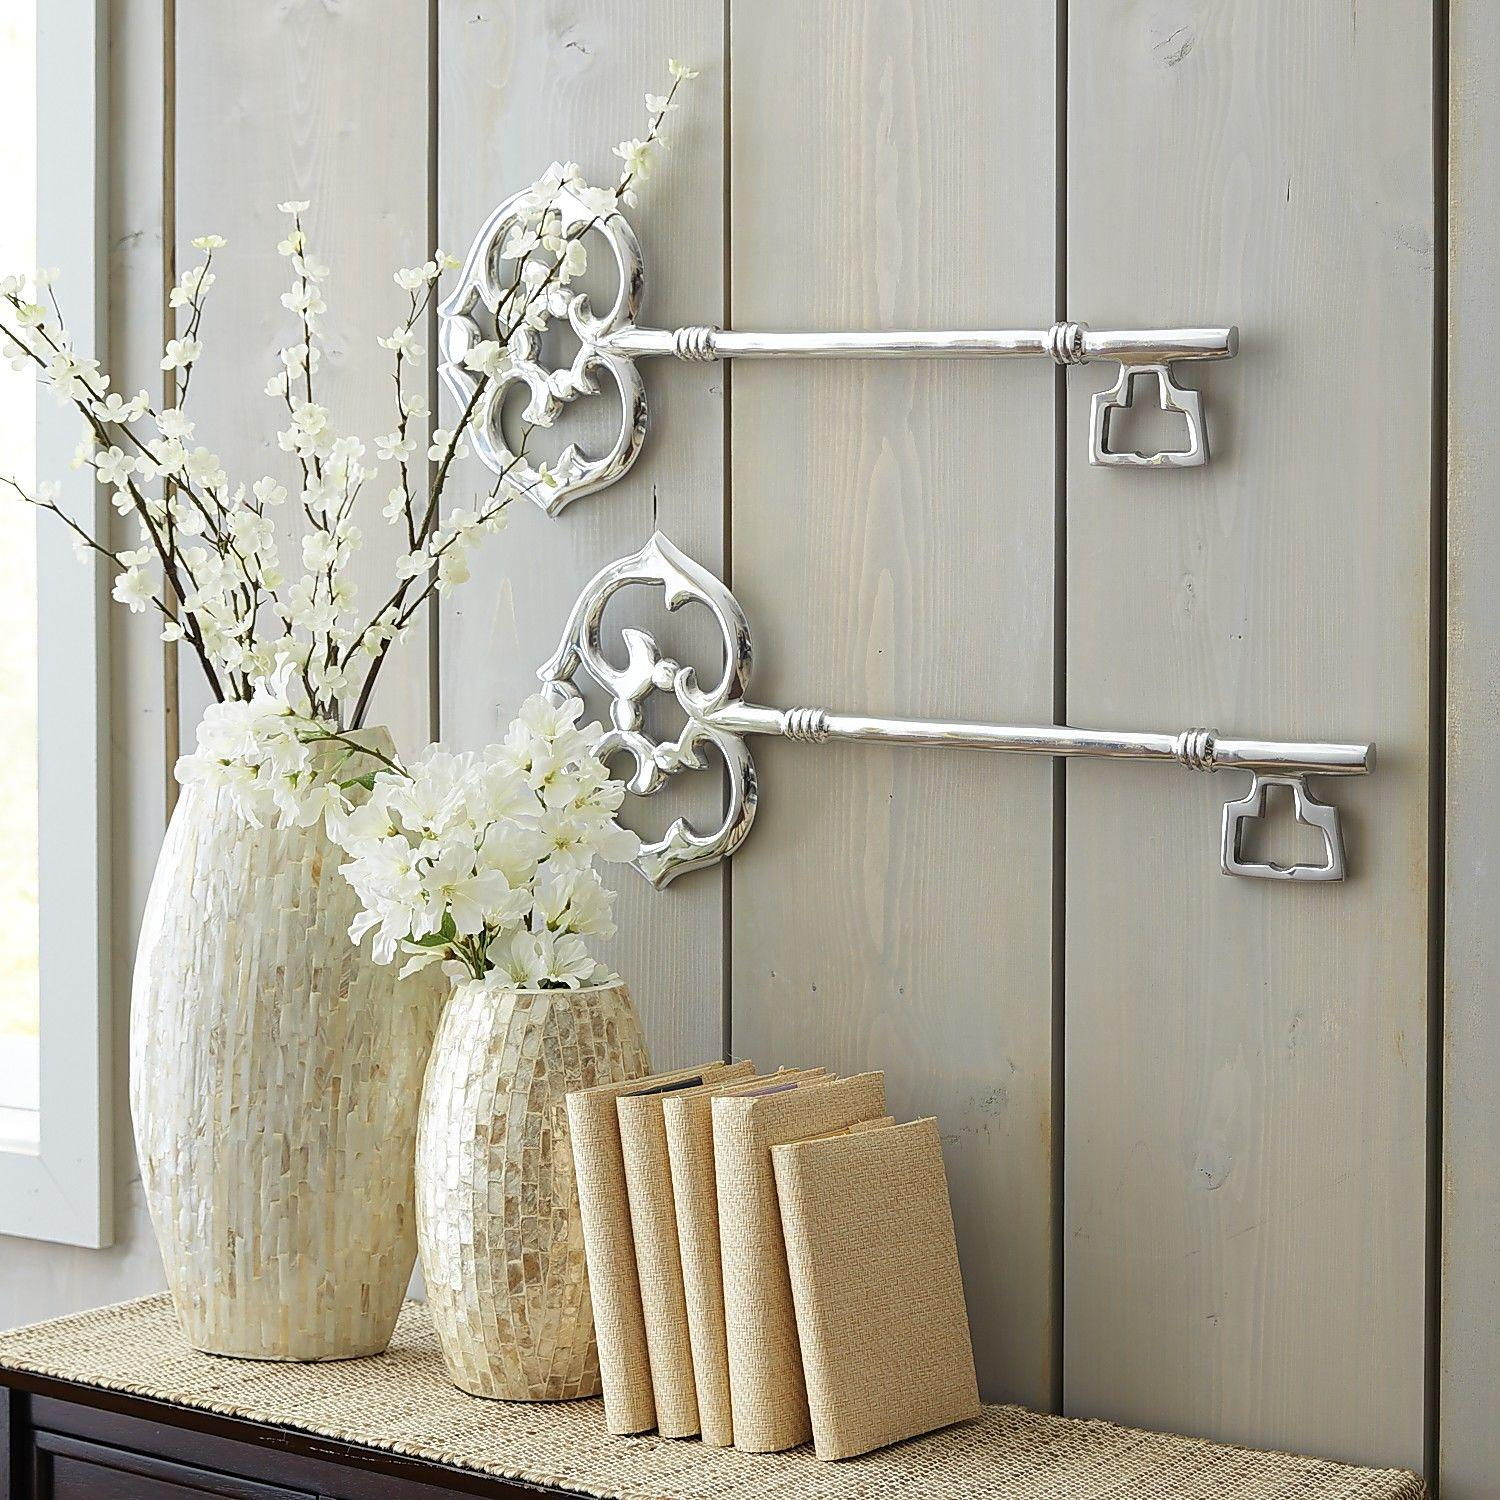 Home Decorators Key Wall Art ~ Aluminum key wall decor from pier imports i like